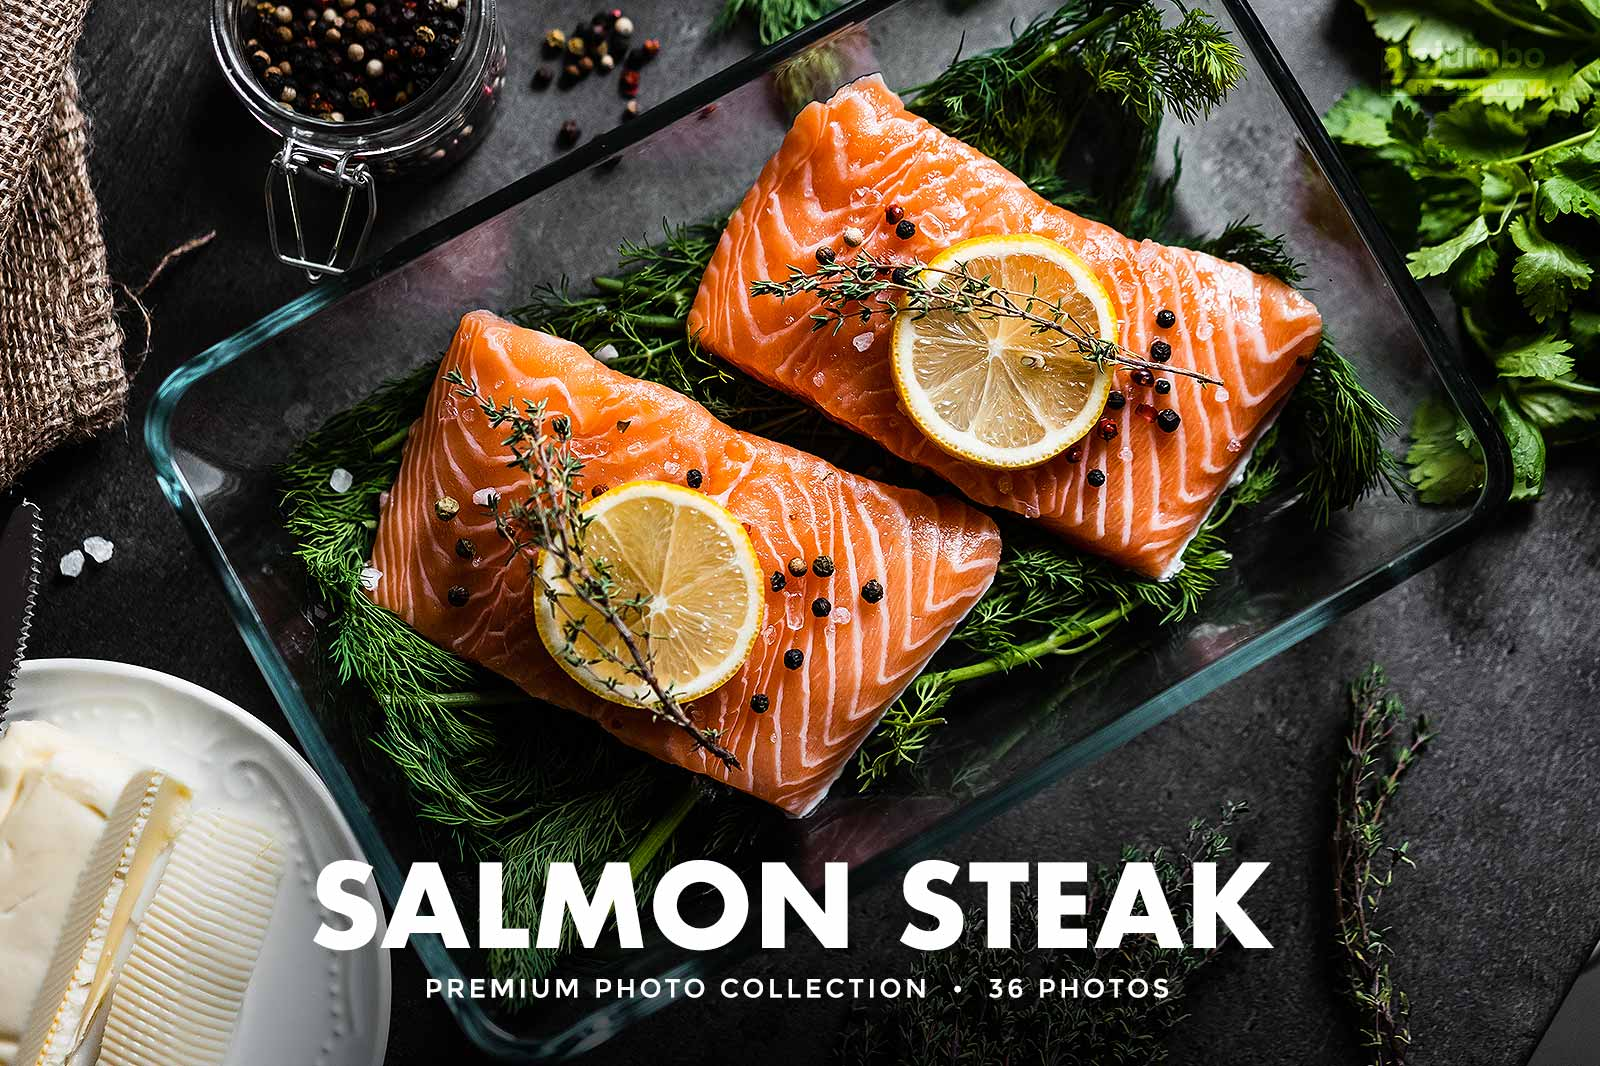 Click here to see Salmon Steak PREMIUM Collection!